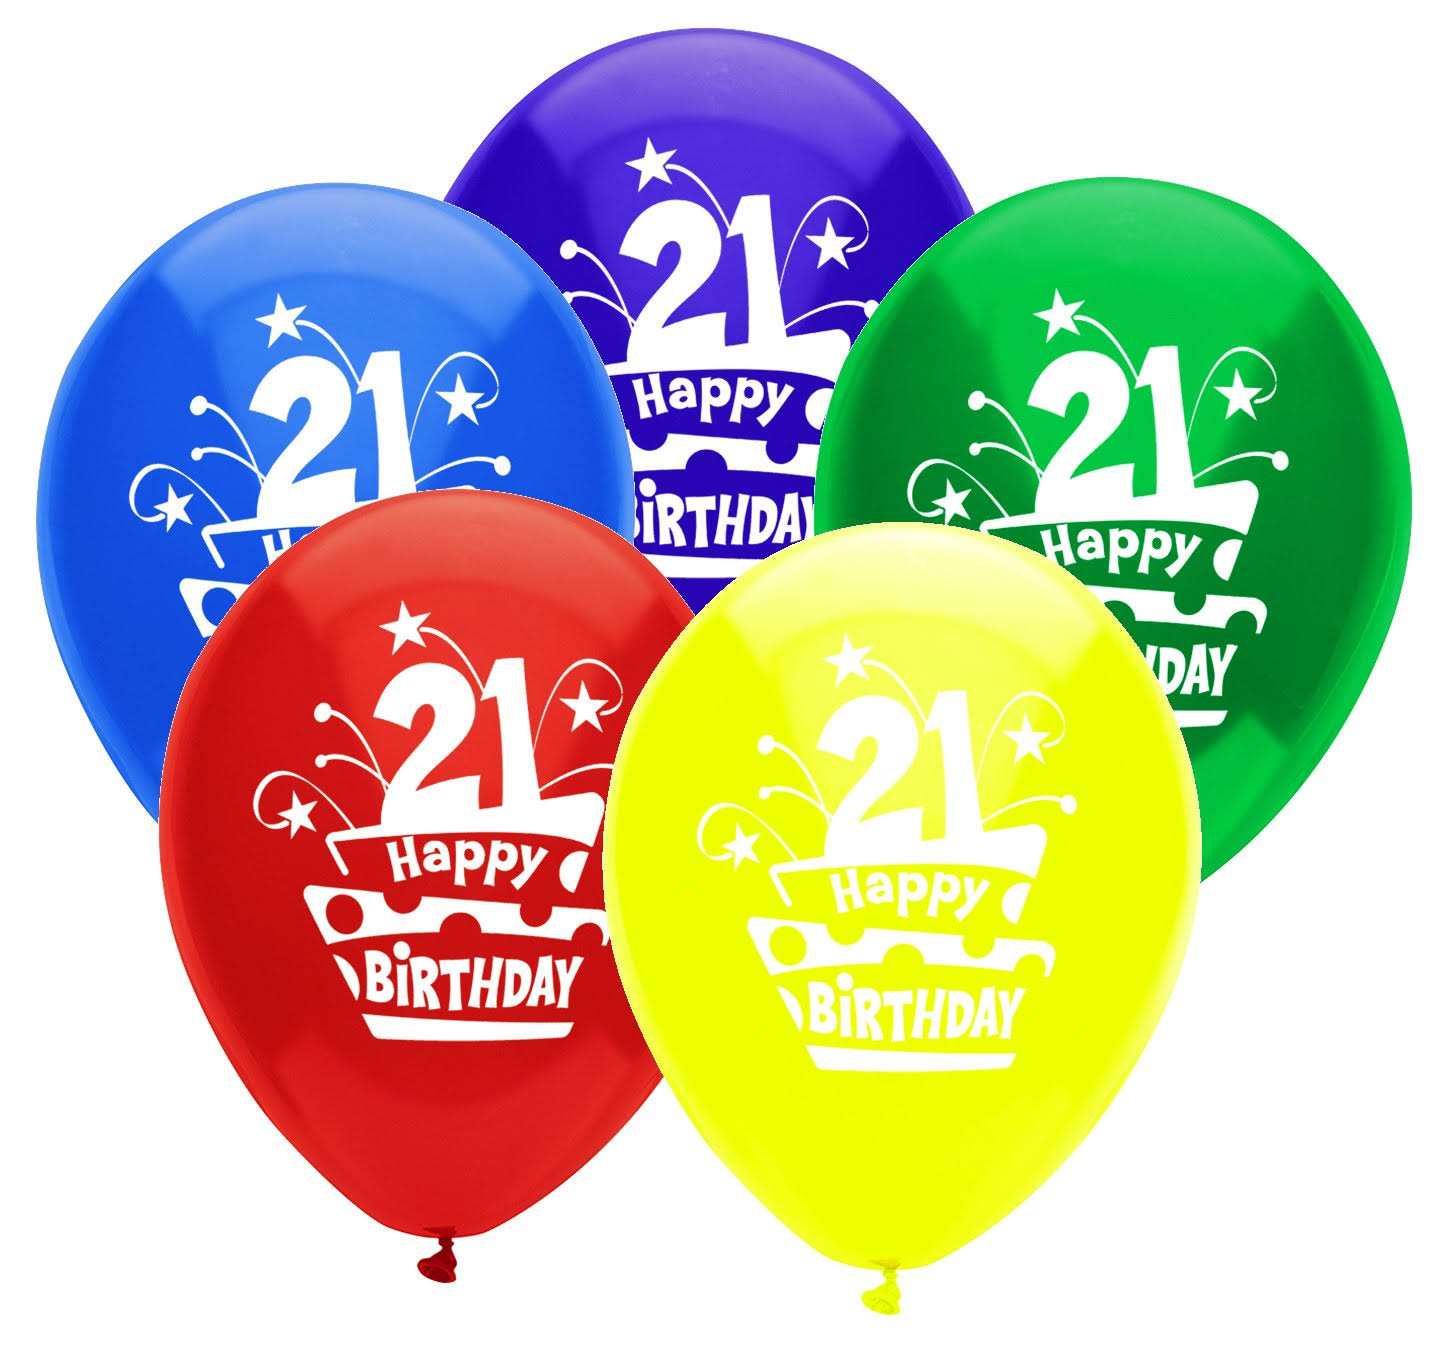 PartyMate 24638 Printed Latex Balloons, 8-Count, Assorted Colors